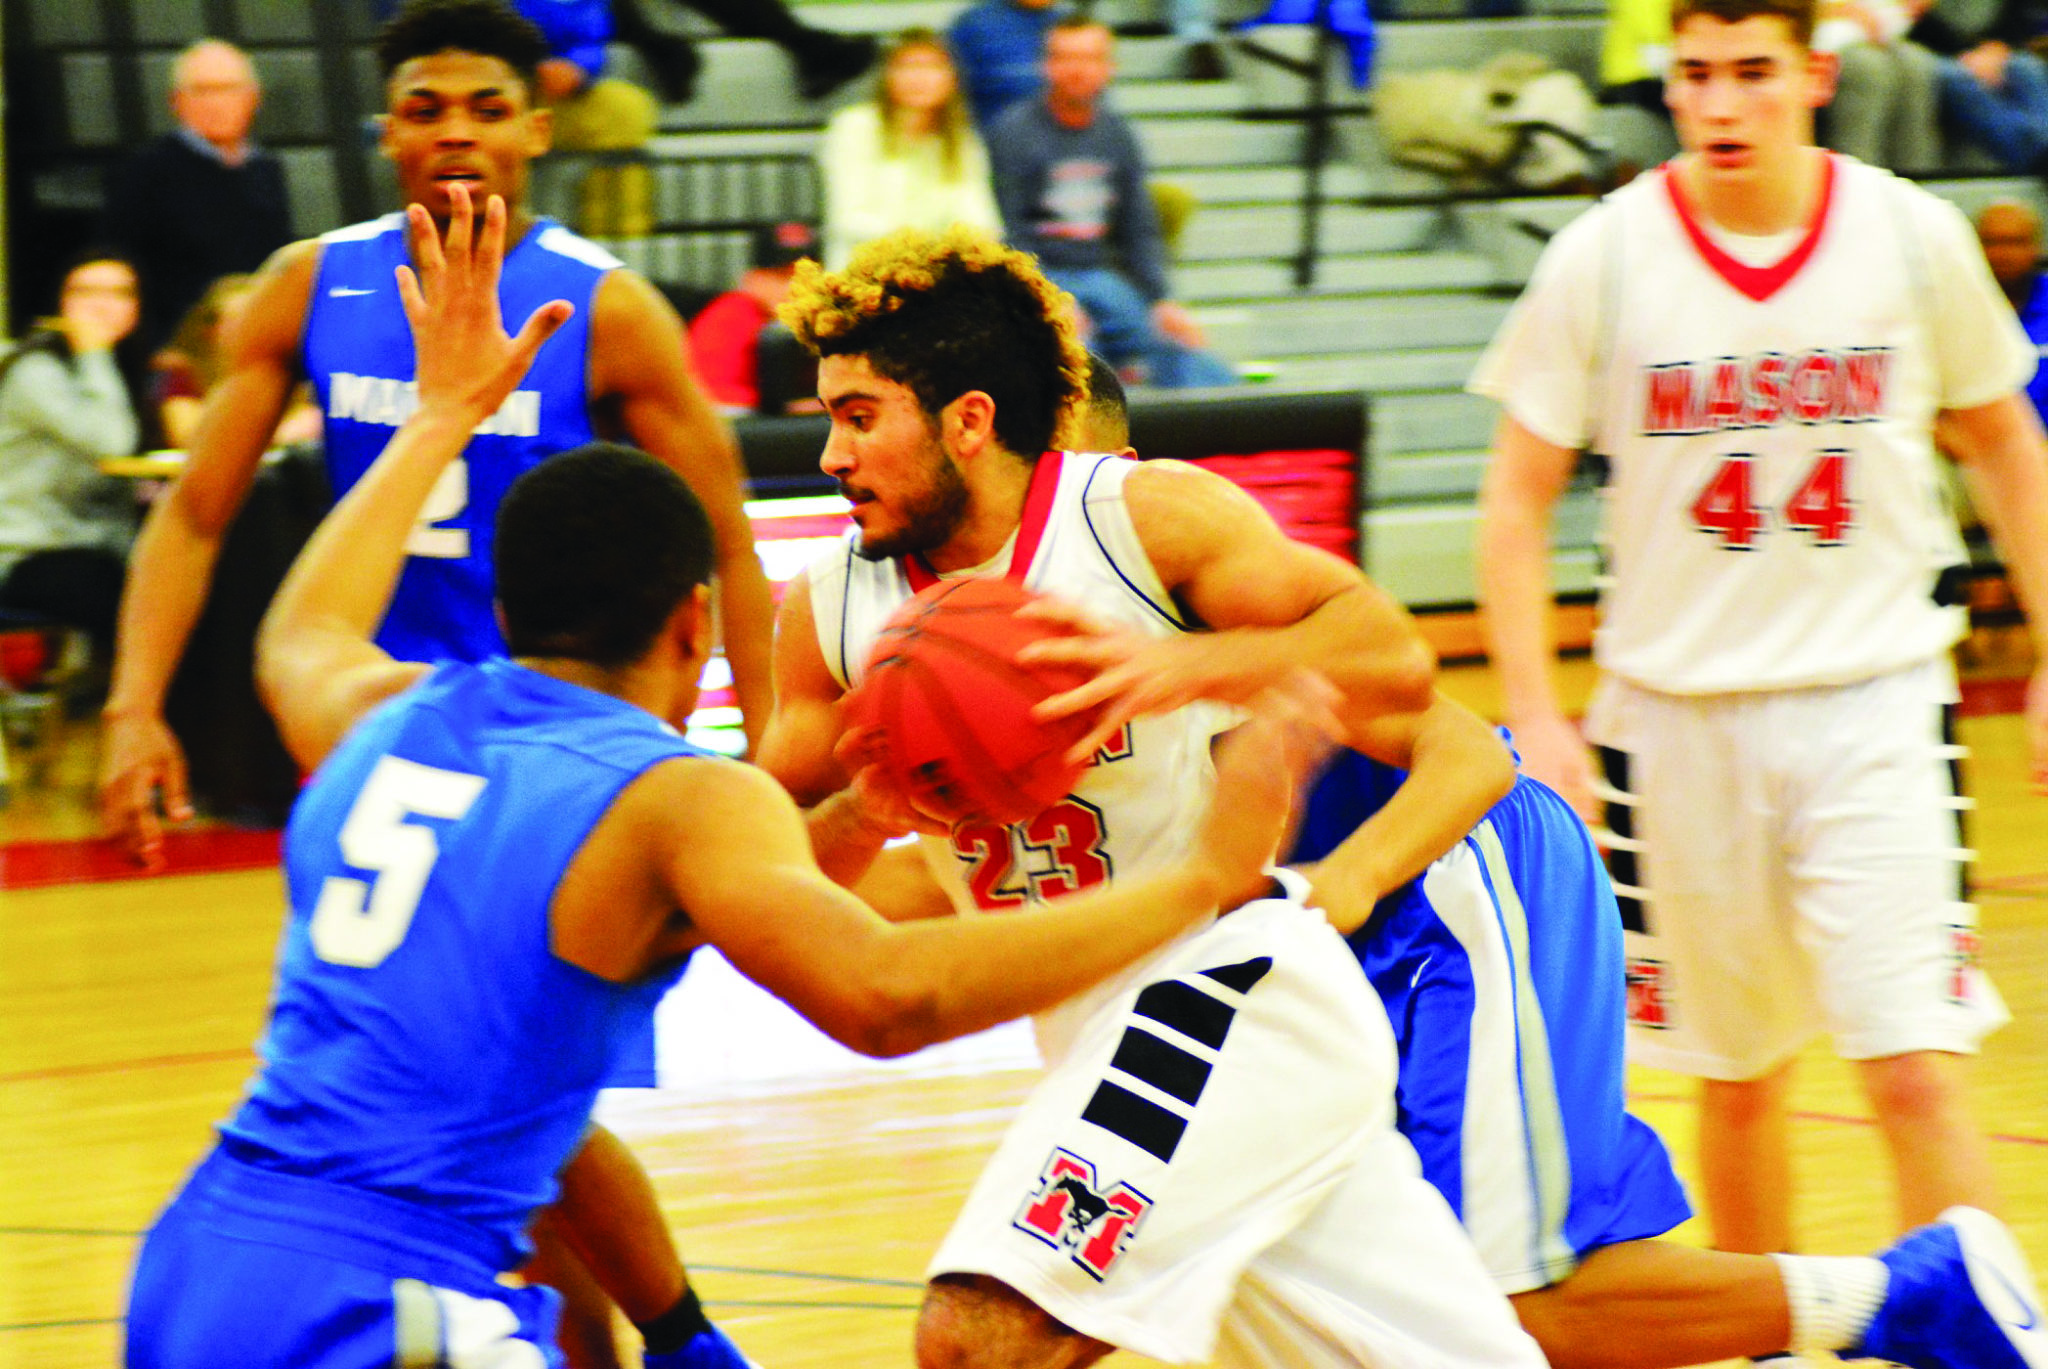 MASON'S Dustin Green drives to the basket in the Mustangs' 51-47 win over Madison. (Photo: Carol Sly)